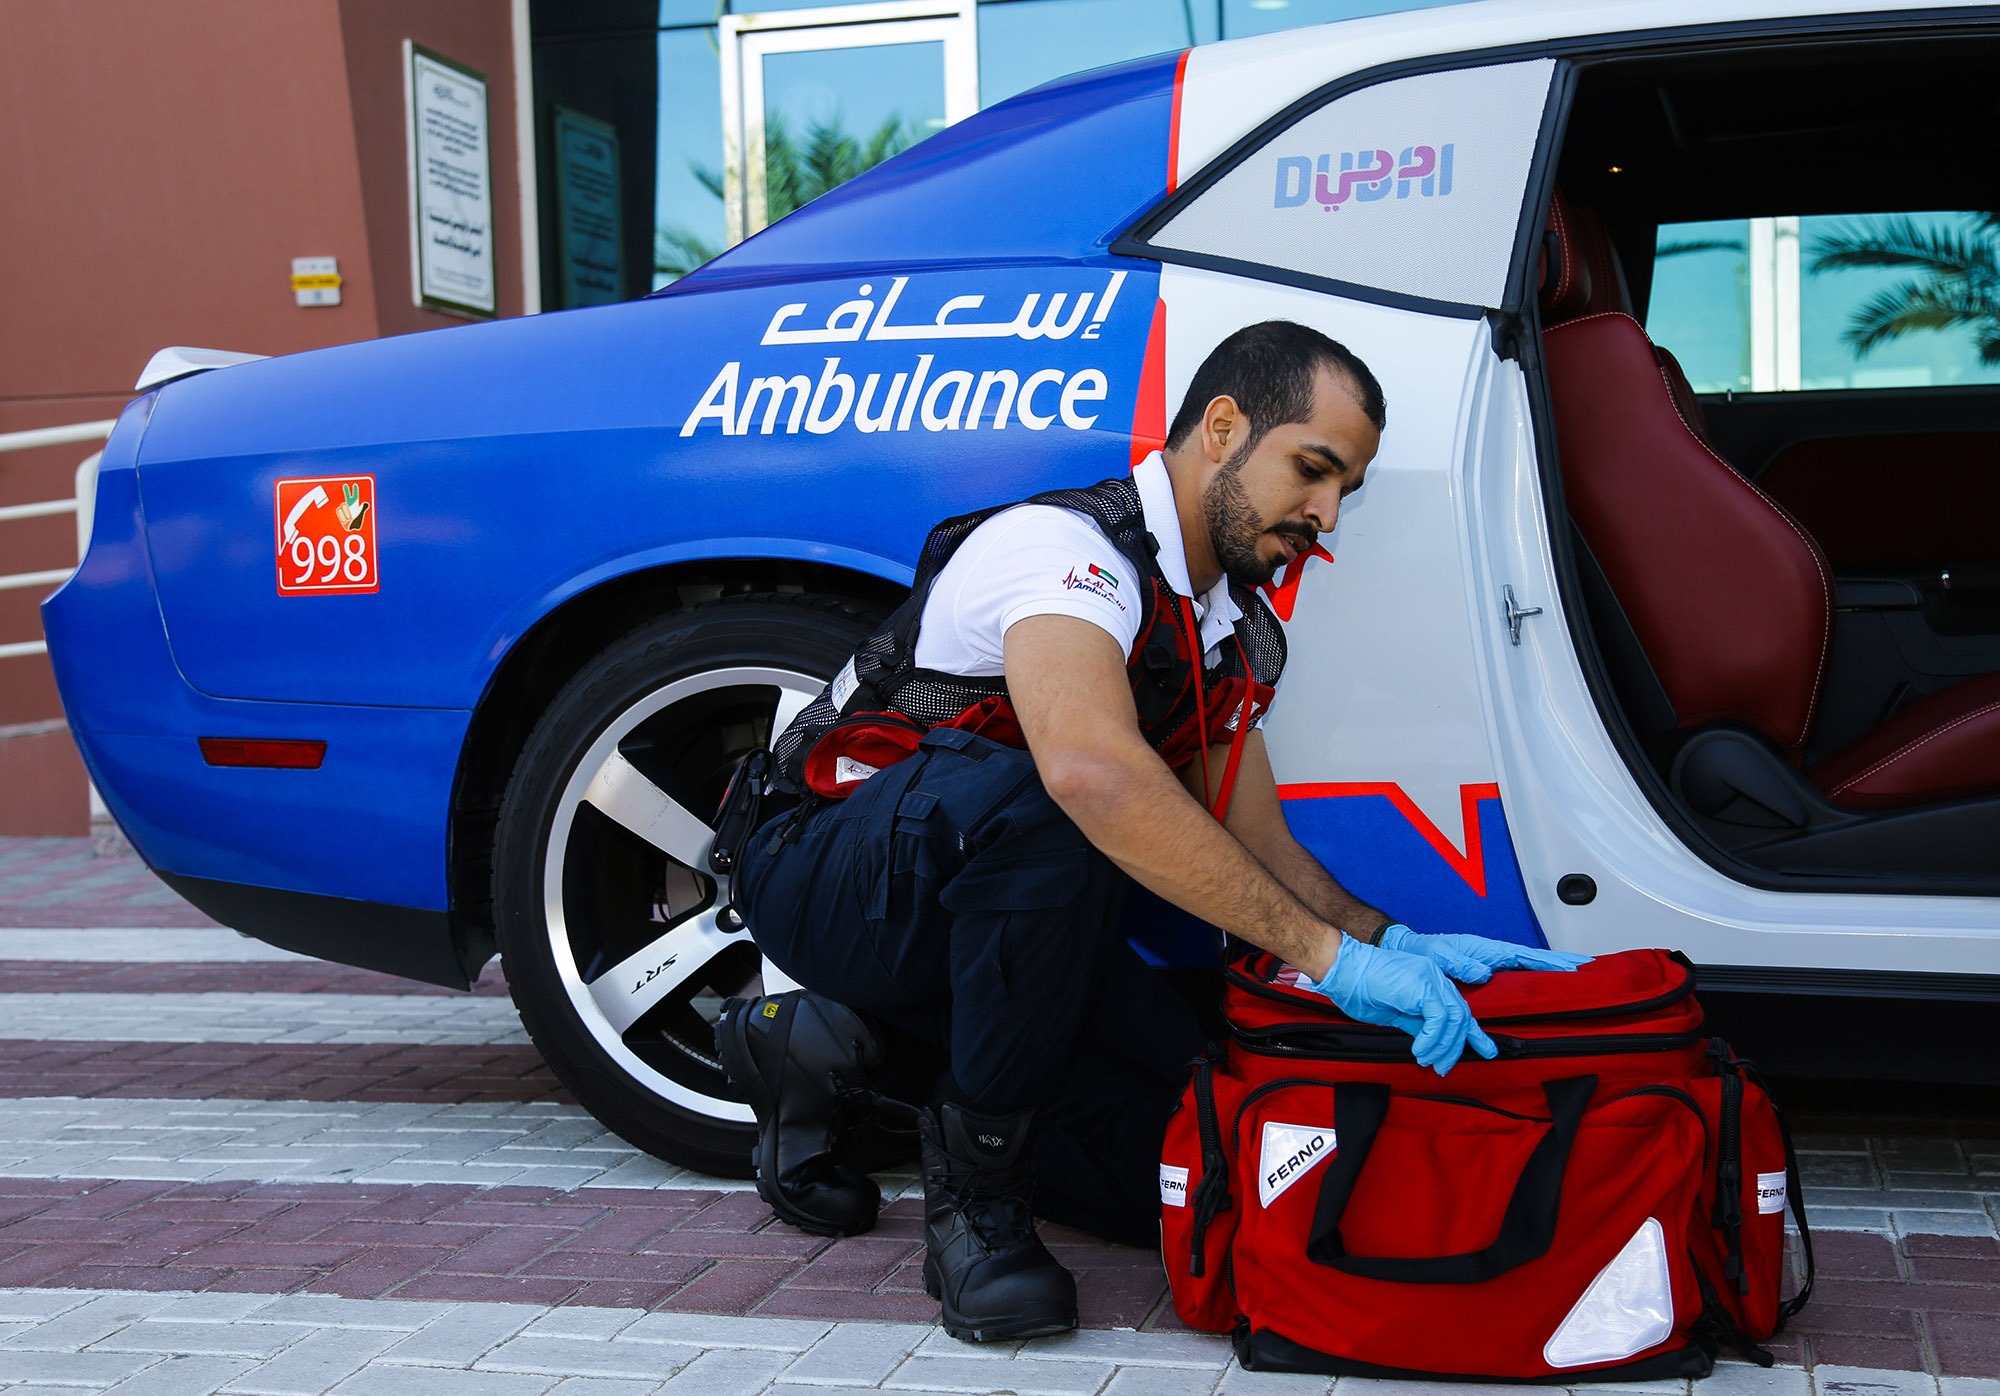 Our Clients: Dubai First Responder